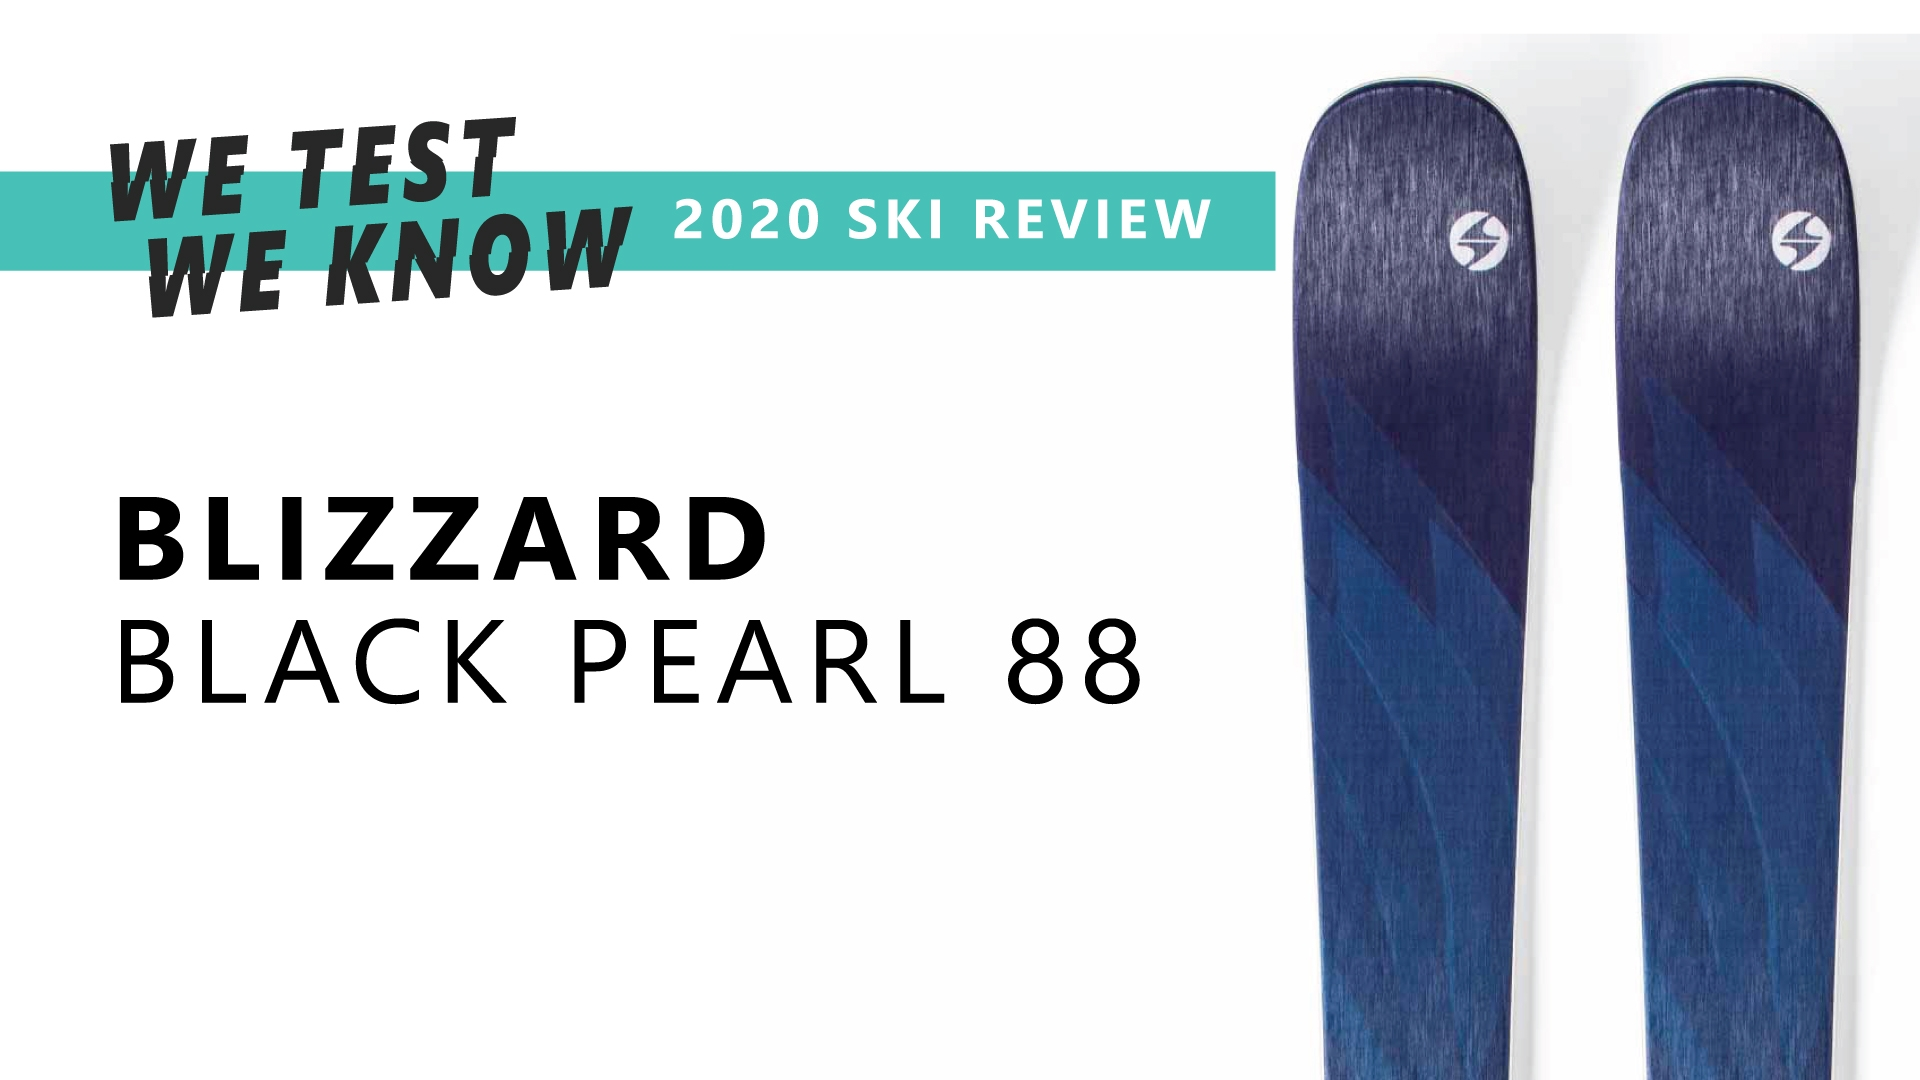 Black Pearl 88 - 2020 Ski Review